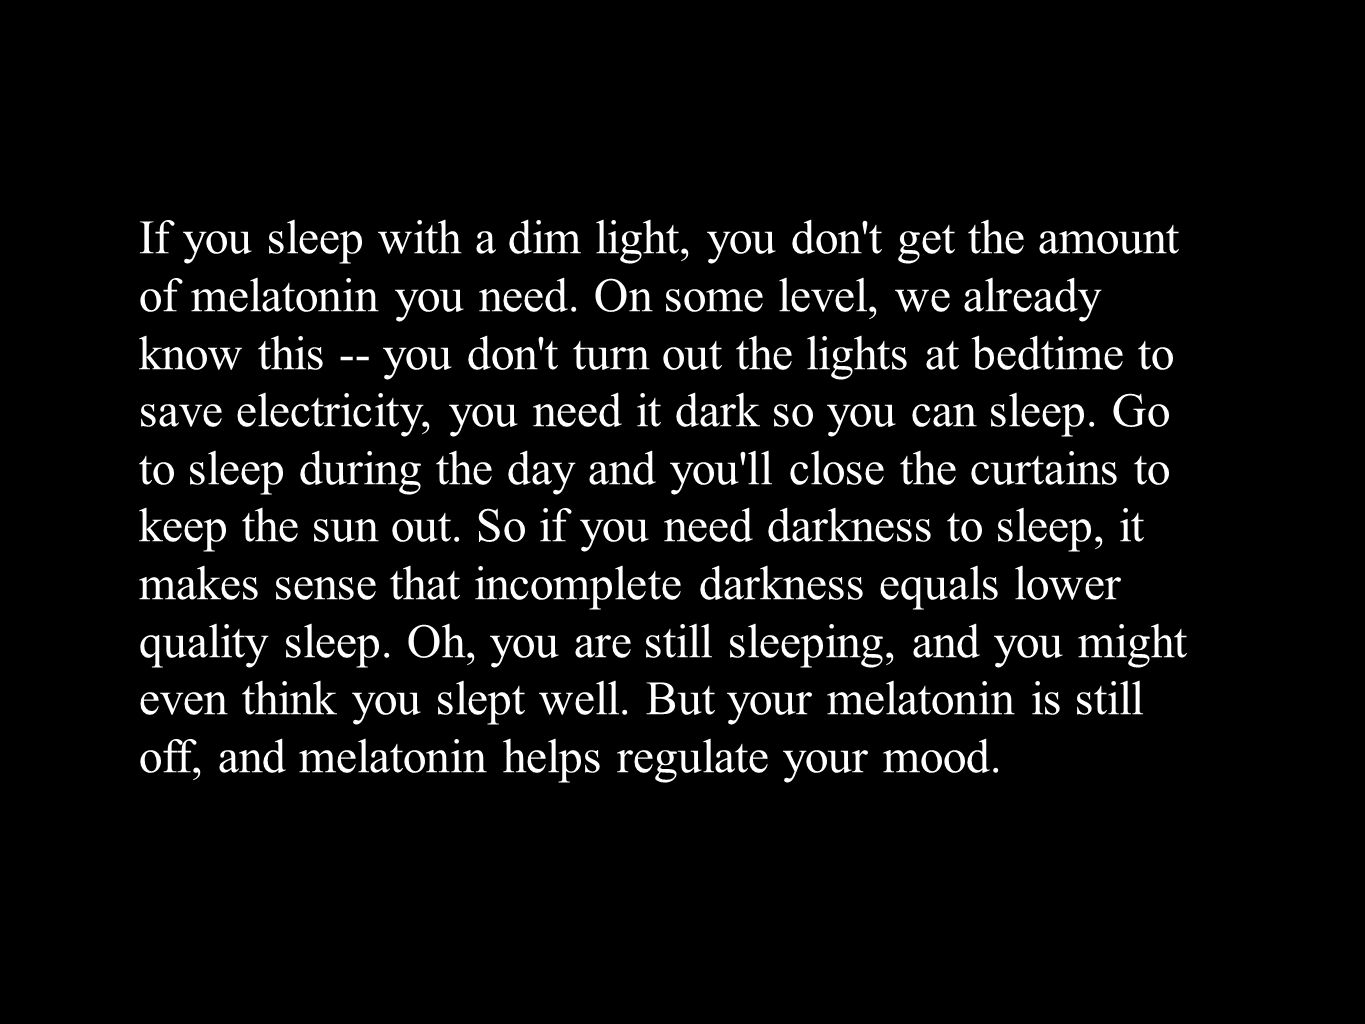 If you sleep with a dim light, you don t get the amount of melatonin you need.